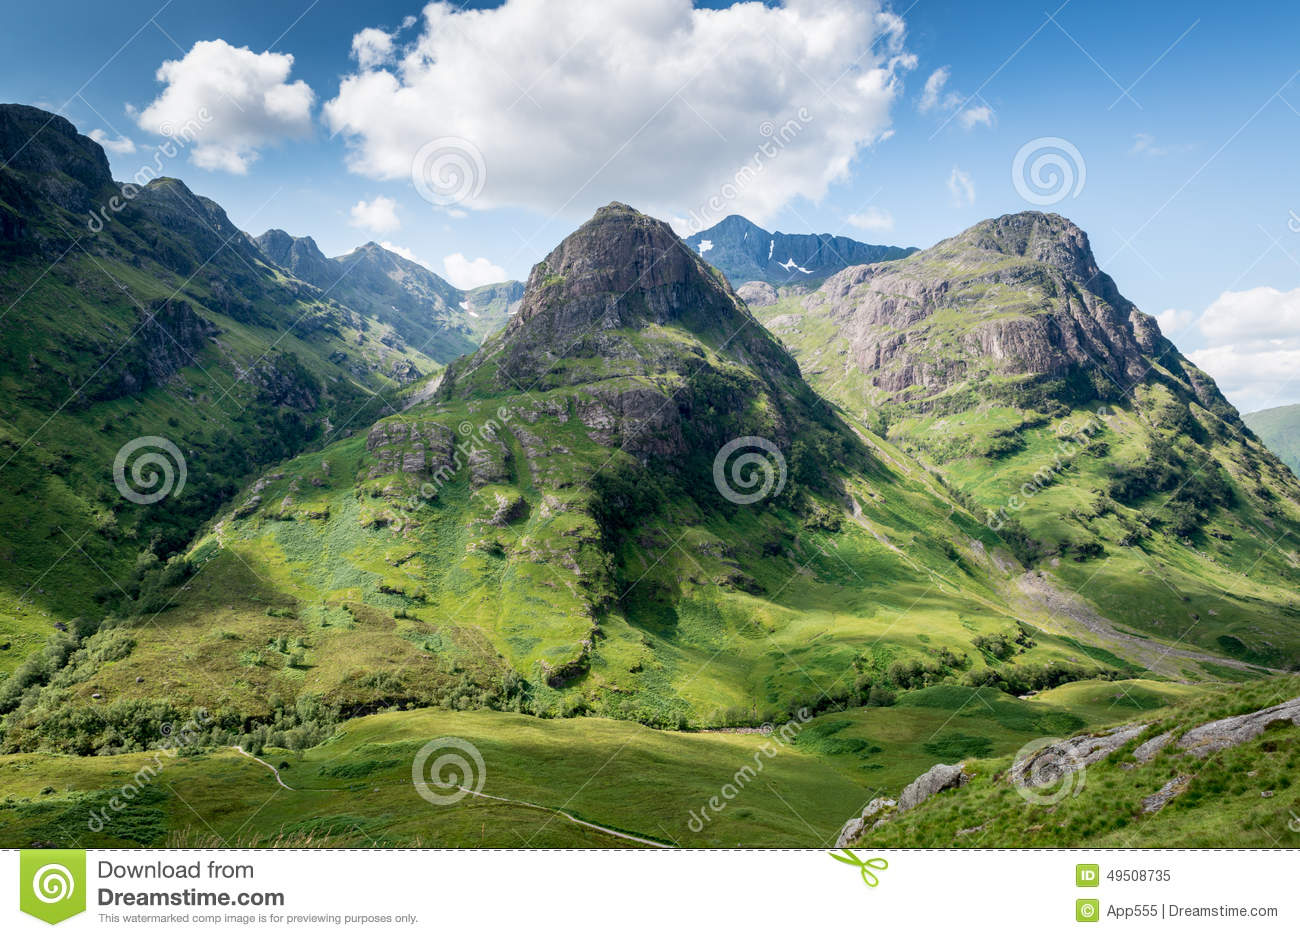 Glen Coe clipart #1, Download drawings